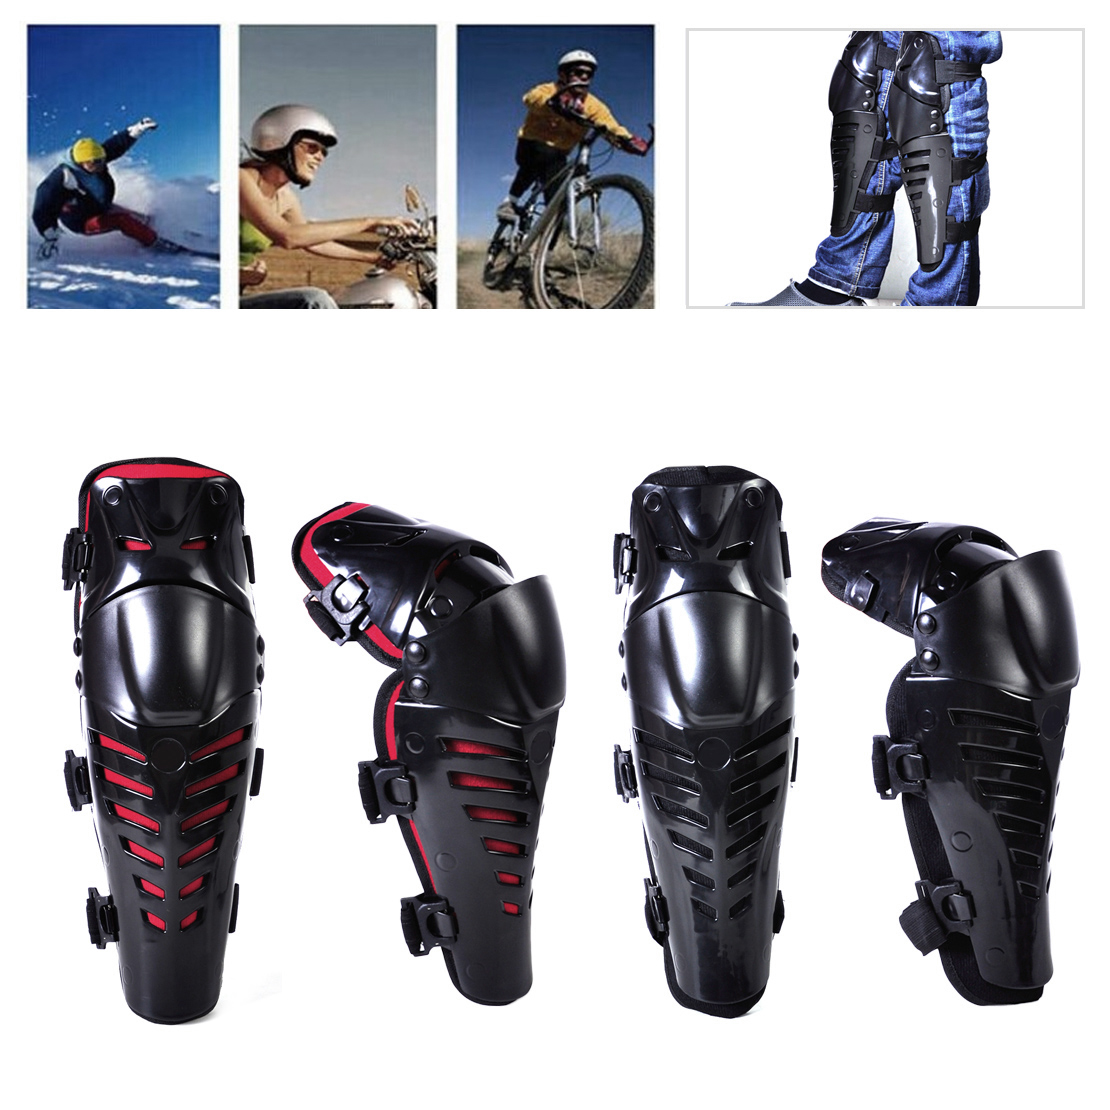 2pcs Motorcycle Motocross Bike Adults Knee Guard Protector Pad Shin Armor fit for Honda BMW Triumph Kawasaki Yamaha Suzuki Guzzi